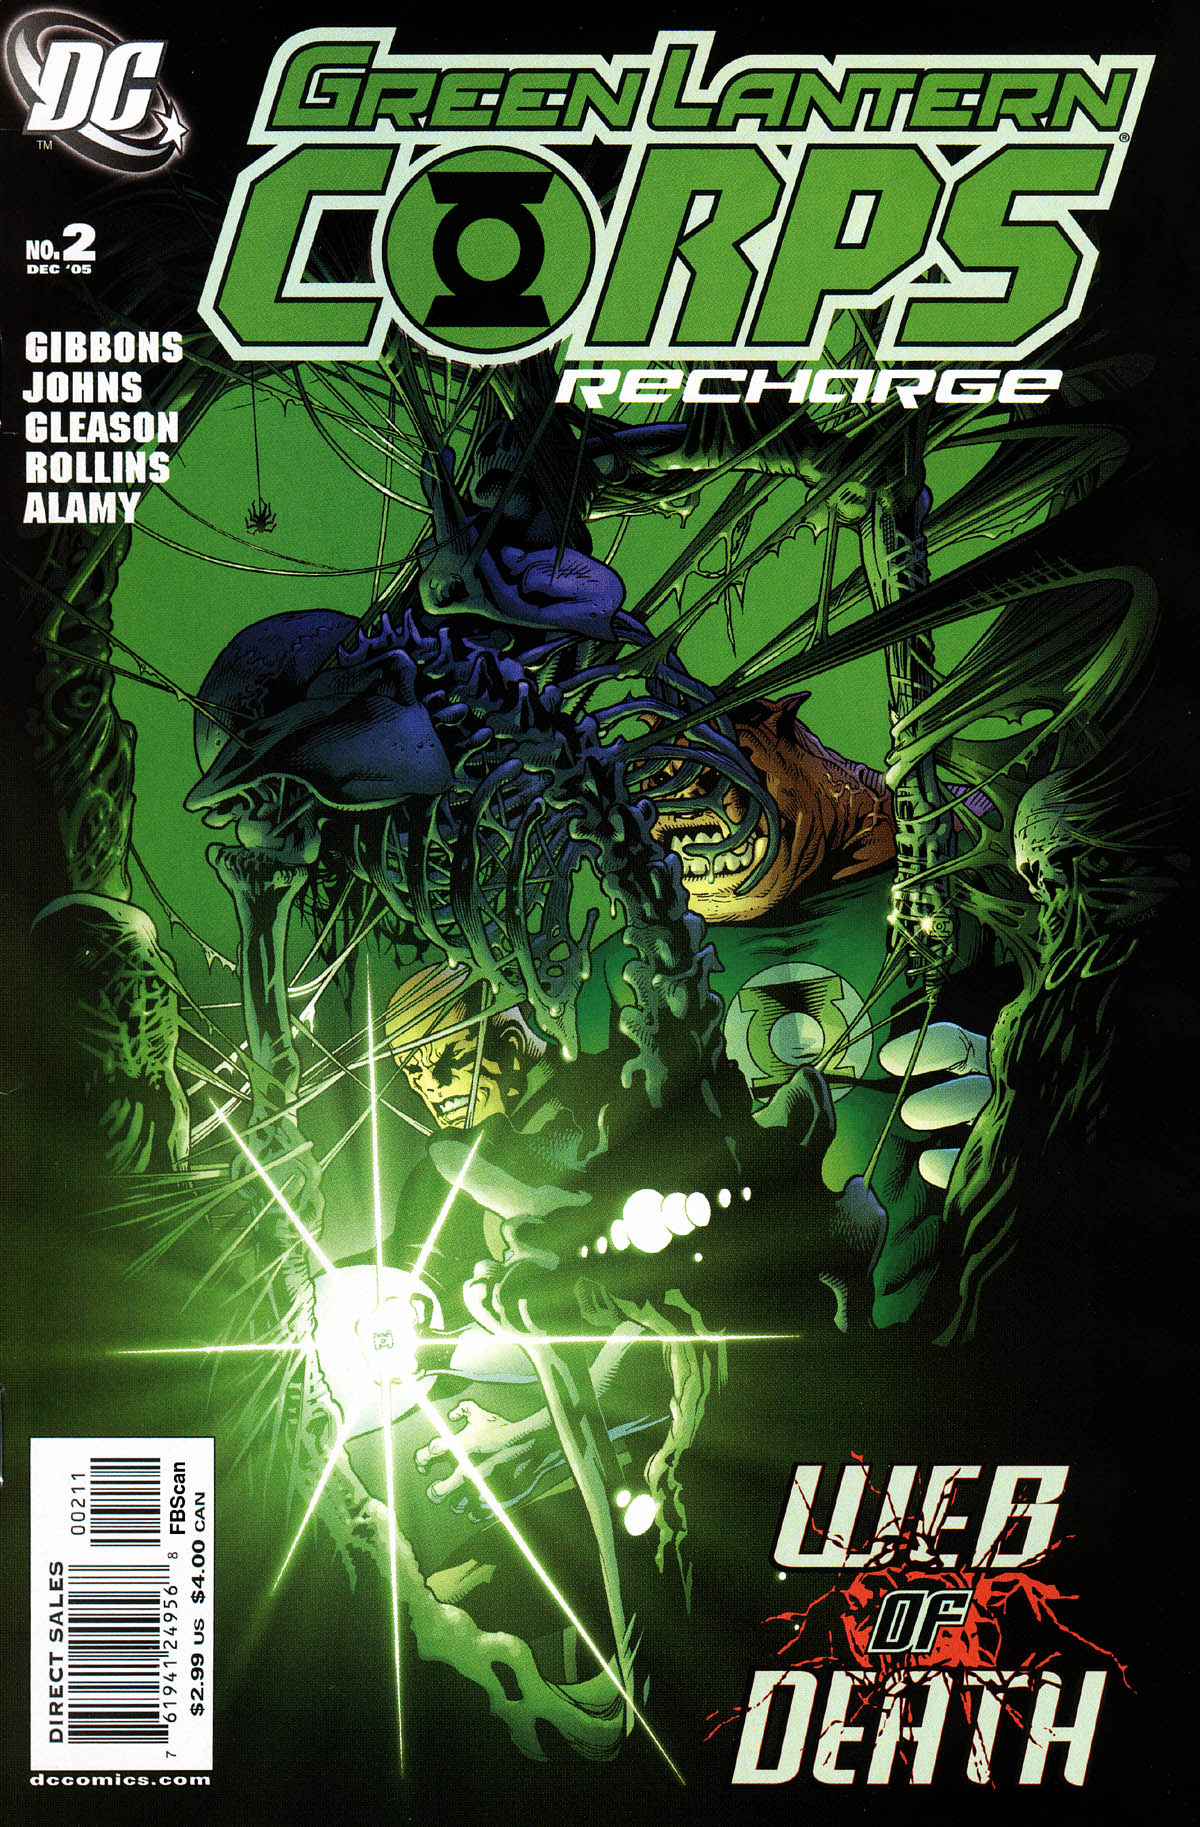 Read online Green Lantern Corps: Recharge comic -  Issue #2 - 1